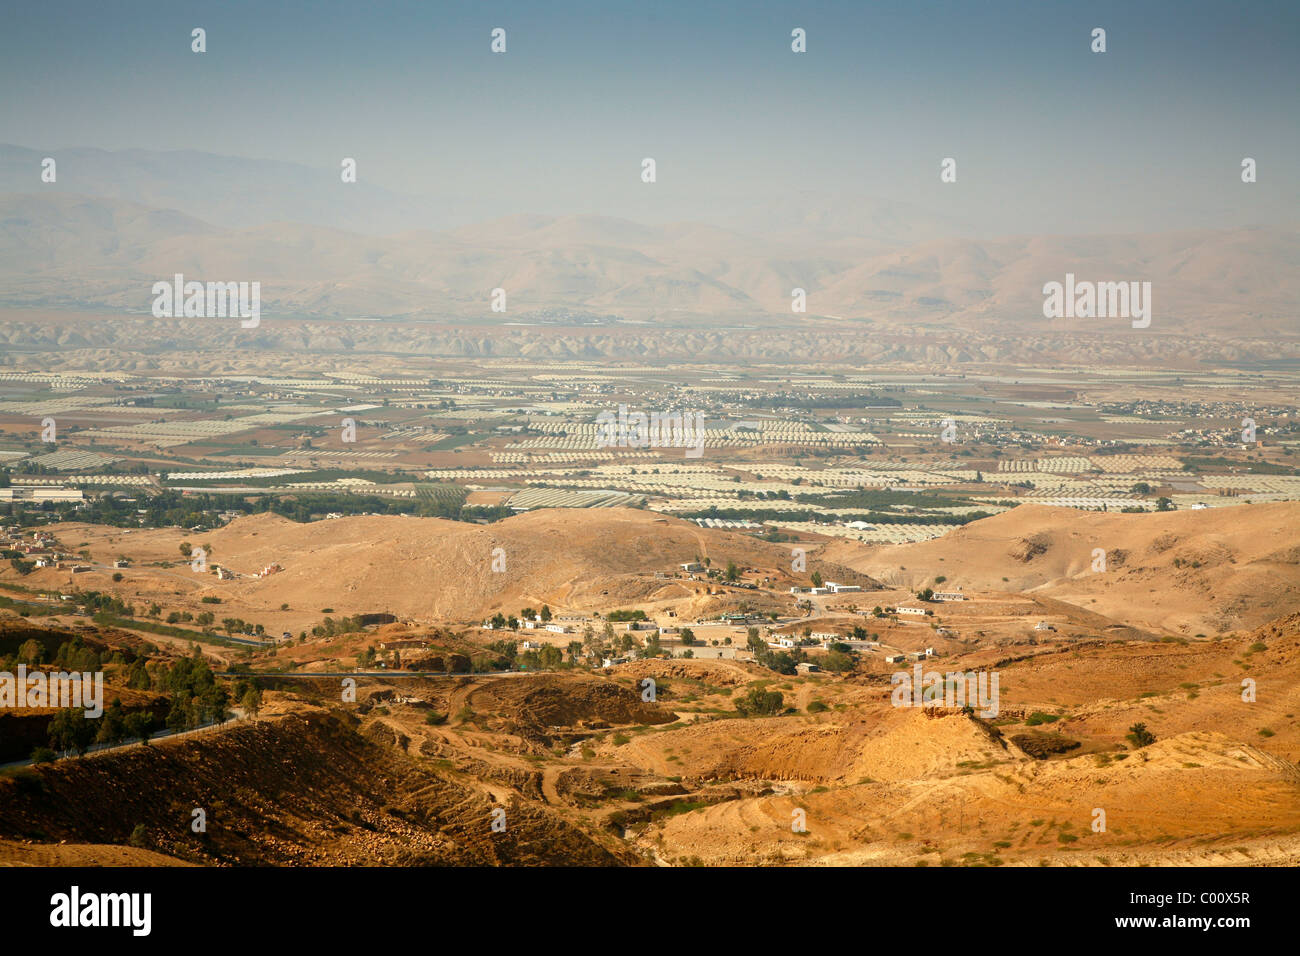 View over the Jordan Valley, Jordan. - Stock Image